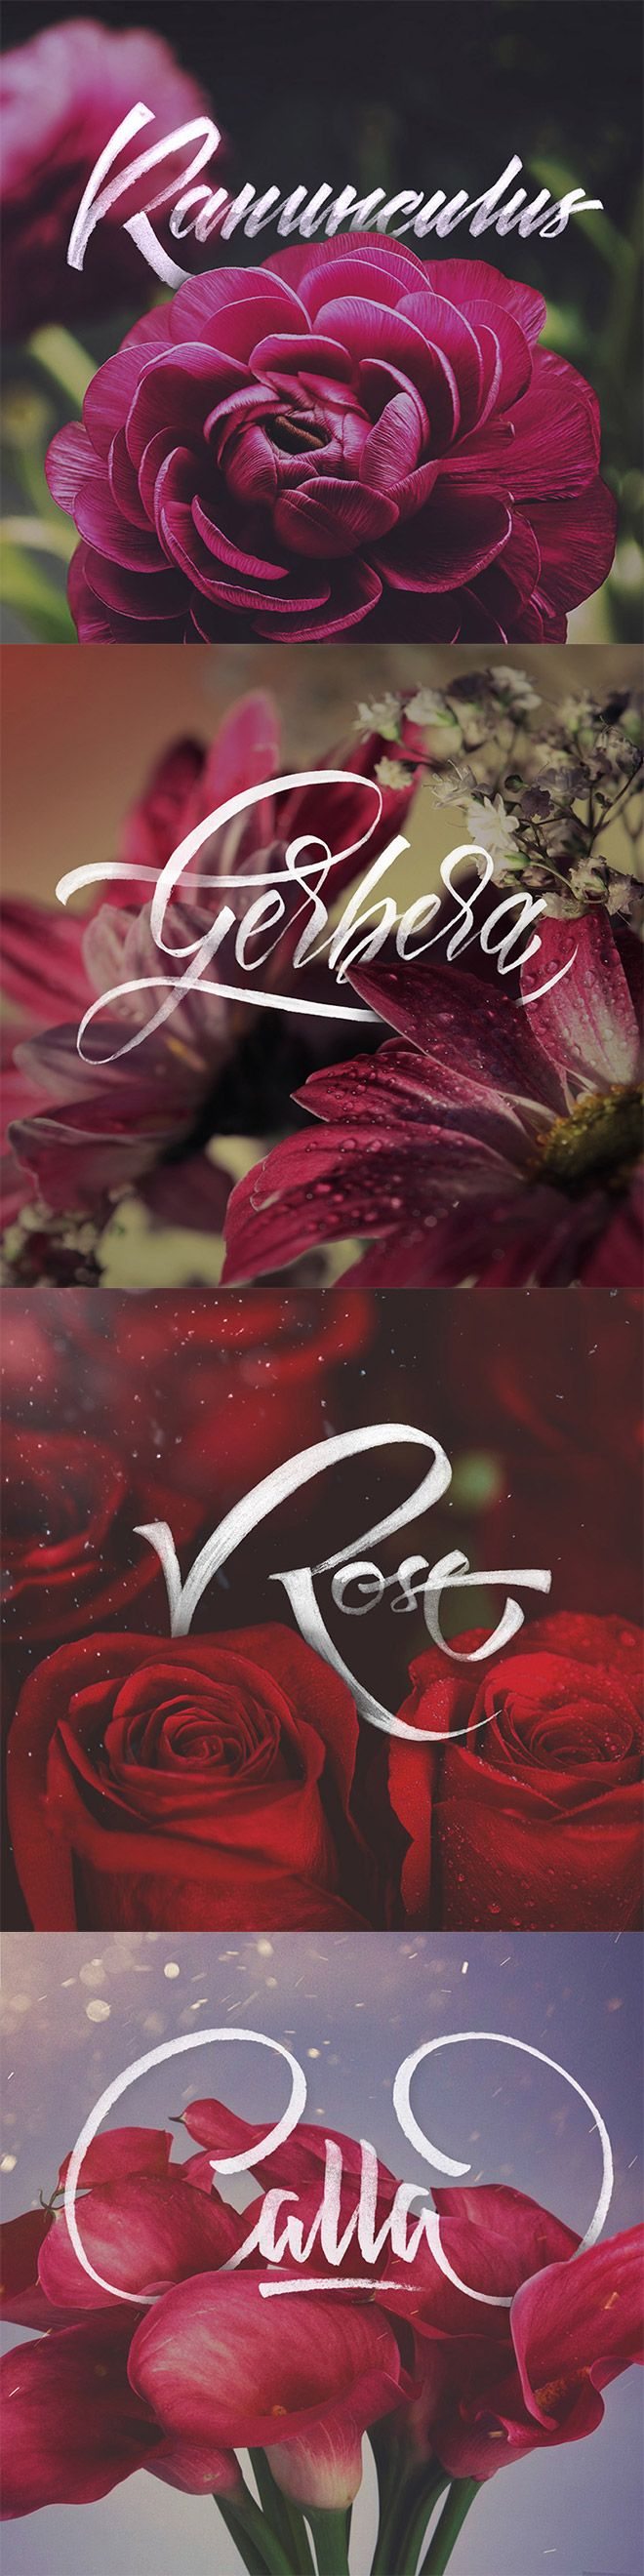 Just Flowers & Letters by Levchenko Calligraphy